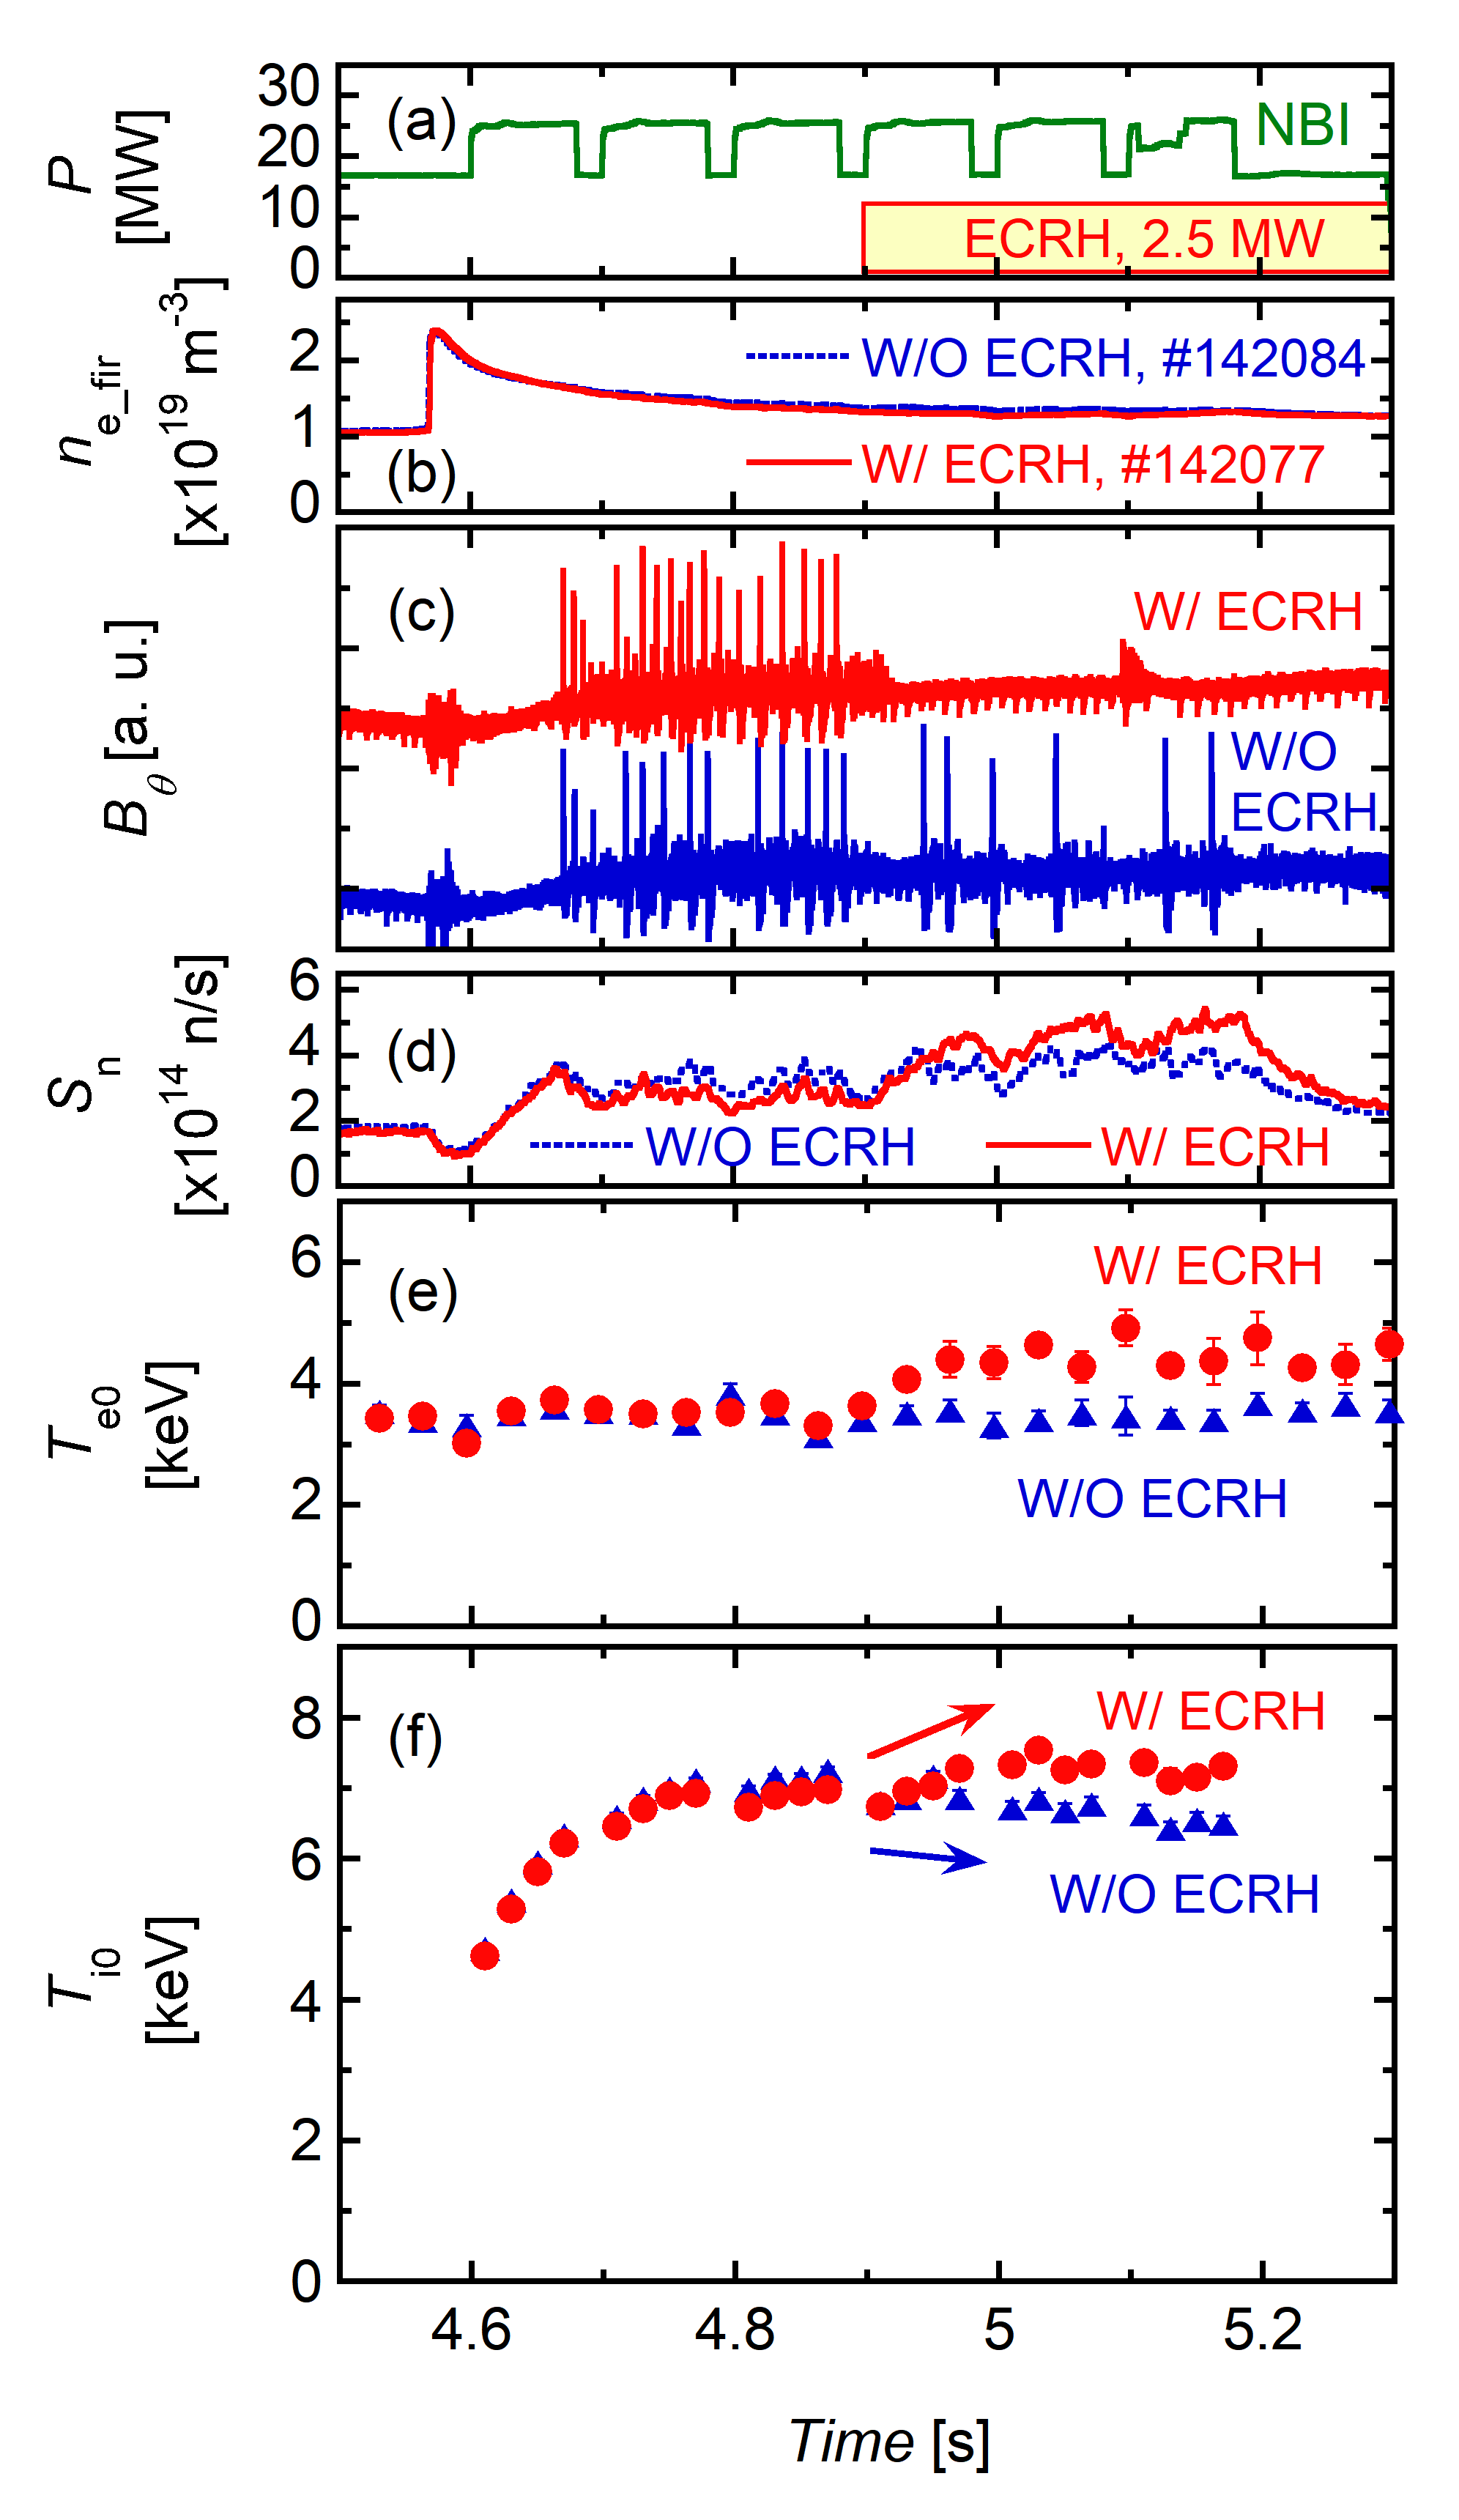 Effect of ECRH on EIC suppression. The time evolution of (a) the heating power, (b) the line-averaged $n_e$, (c) the magnetic fluctuation, (d) the neutron emission rate, (e) the central electron temperature, and (f) the central ion temperature without and with 2.5-MW ECRH.